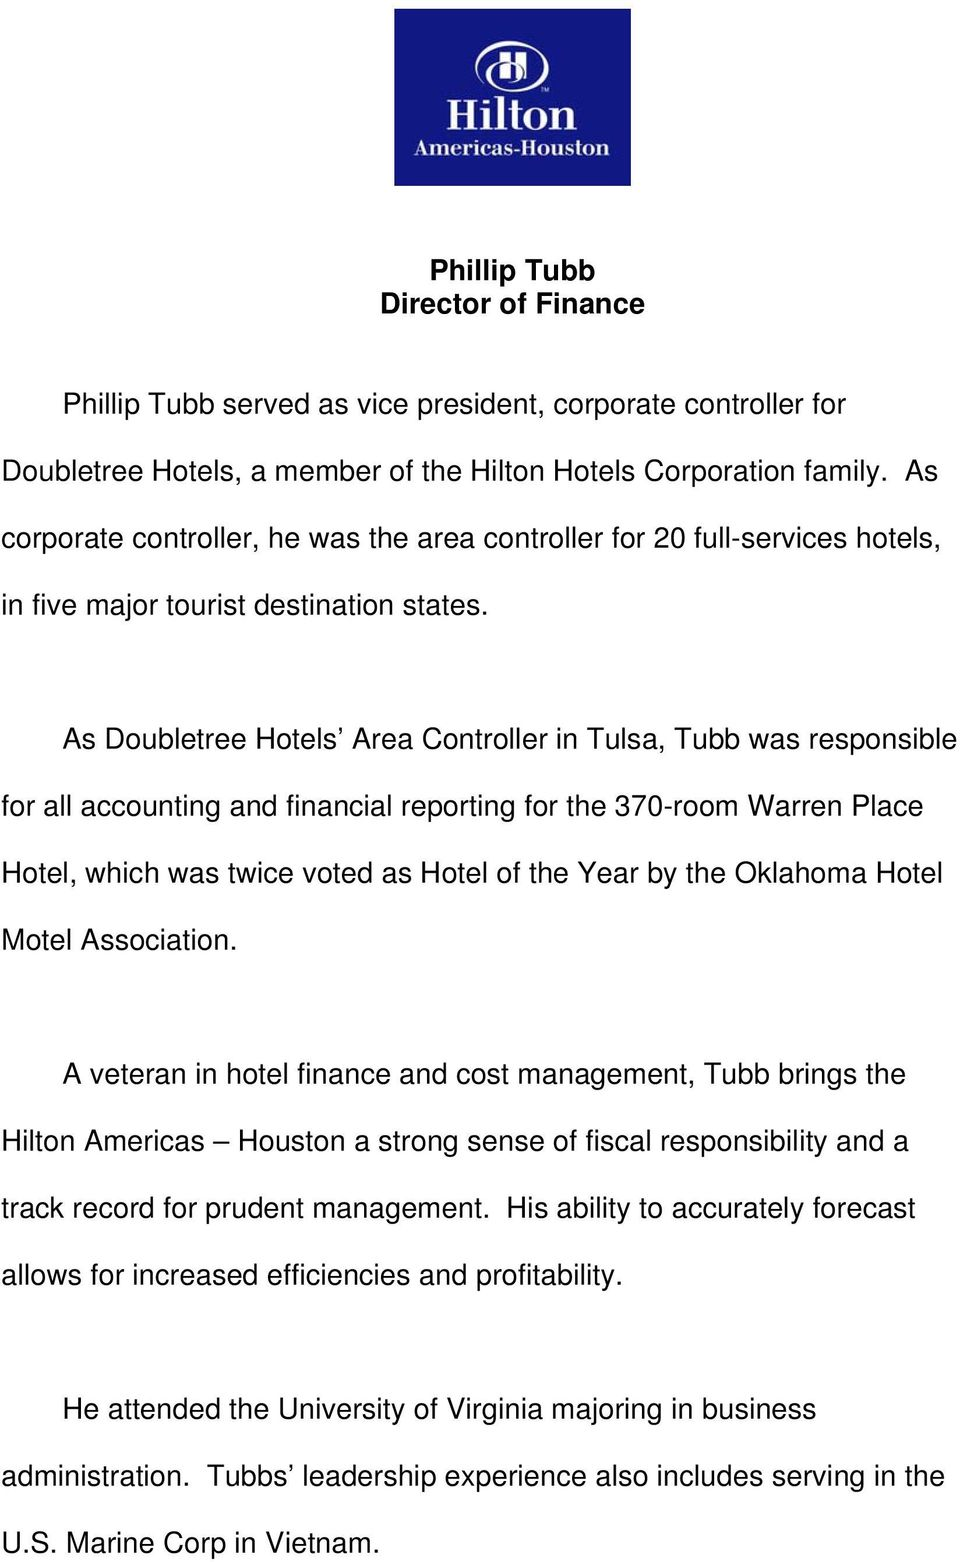 As Doubletree Hotels Area Controller in Tulsa, Tubb was responsible for all accounting and financial reporting for the 370-room Warren Place Hotel, which was twice voted as Hotel of the Year by the